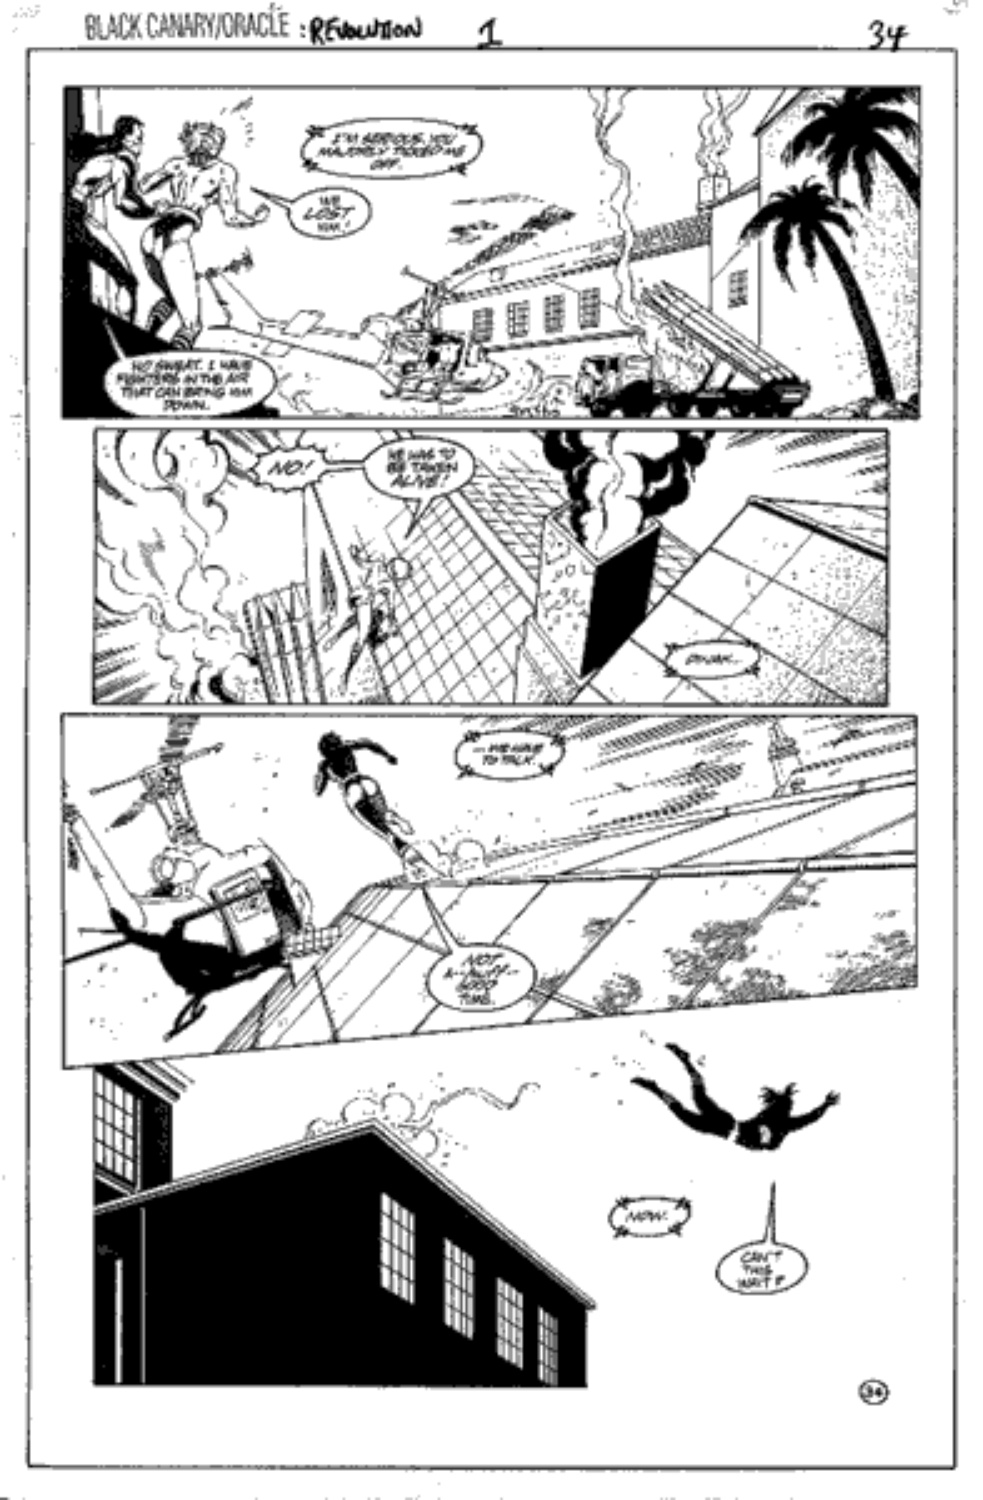 Birds of Prey / Oracle Revolution -1 pg 34